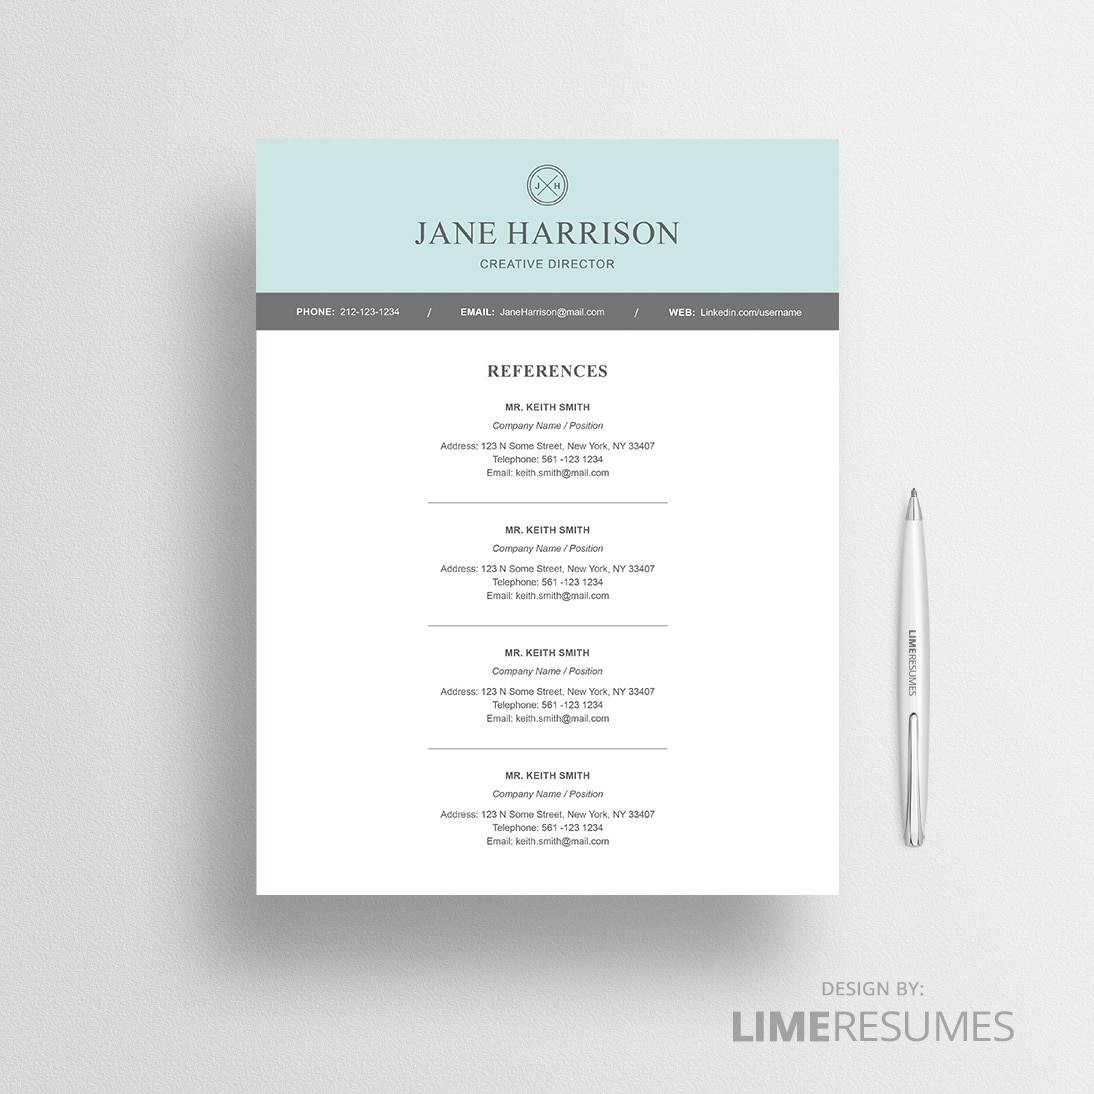 Modern Resume Template for Microsoft Word   LimeResumes Modern reference page